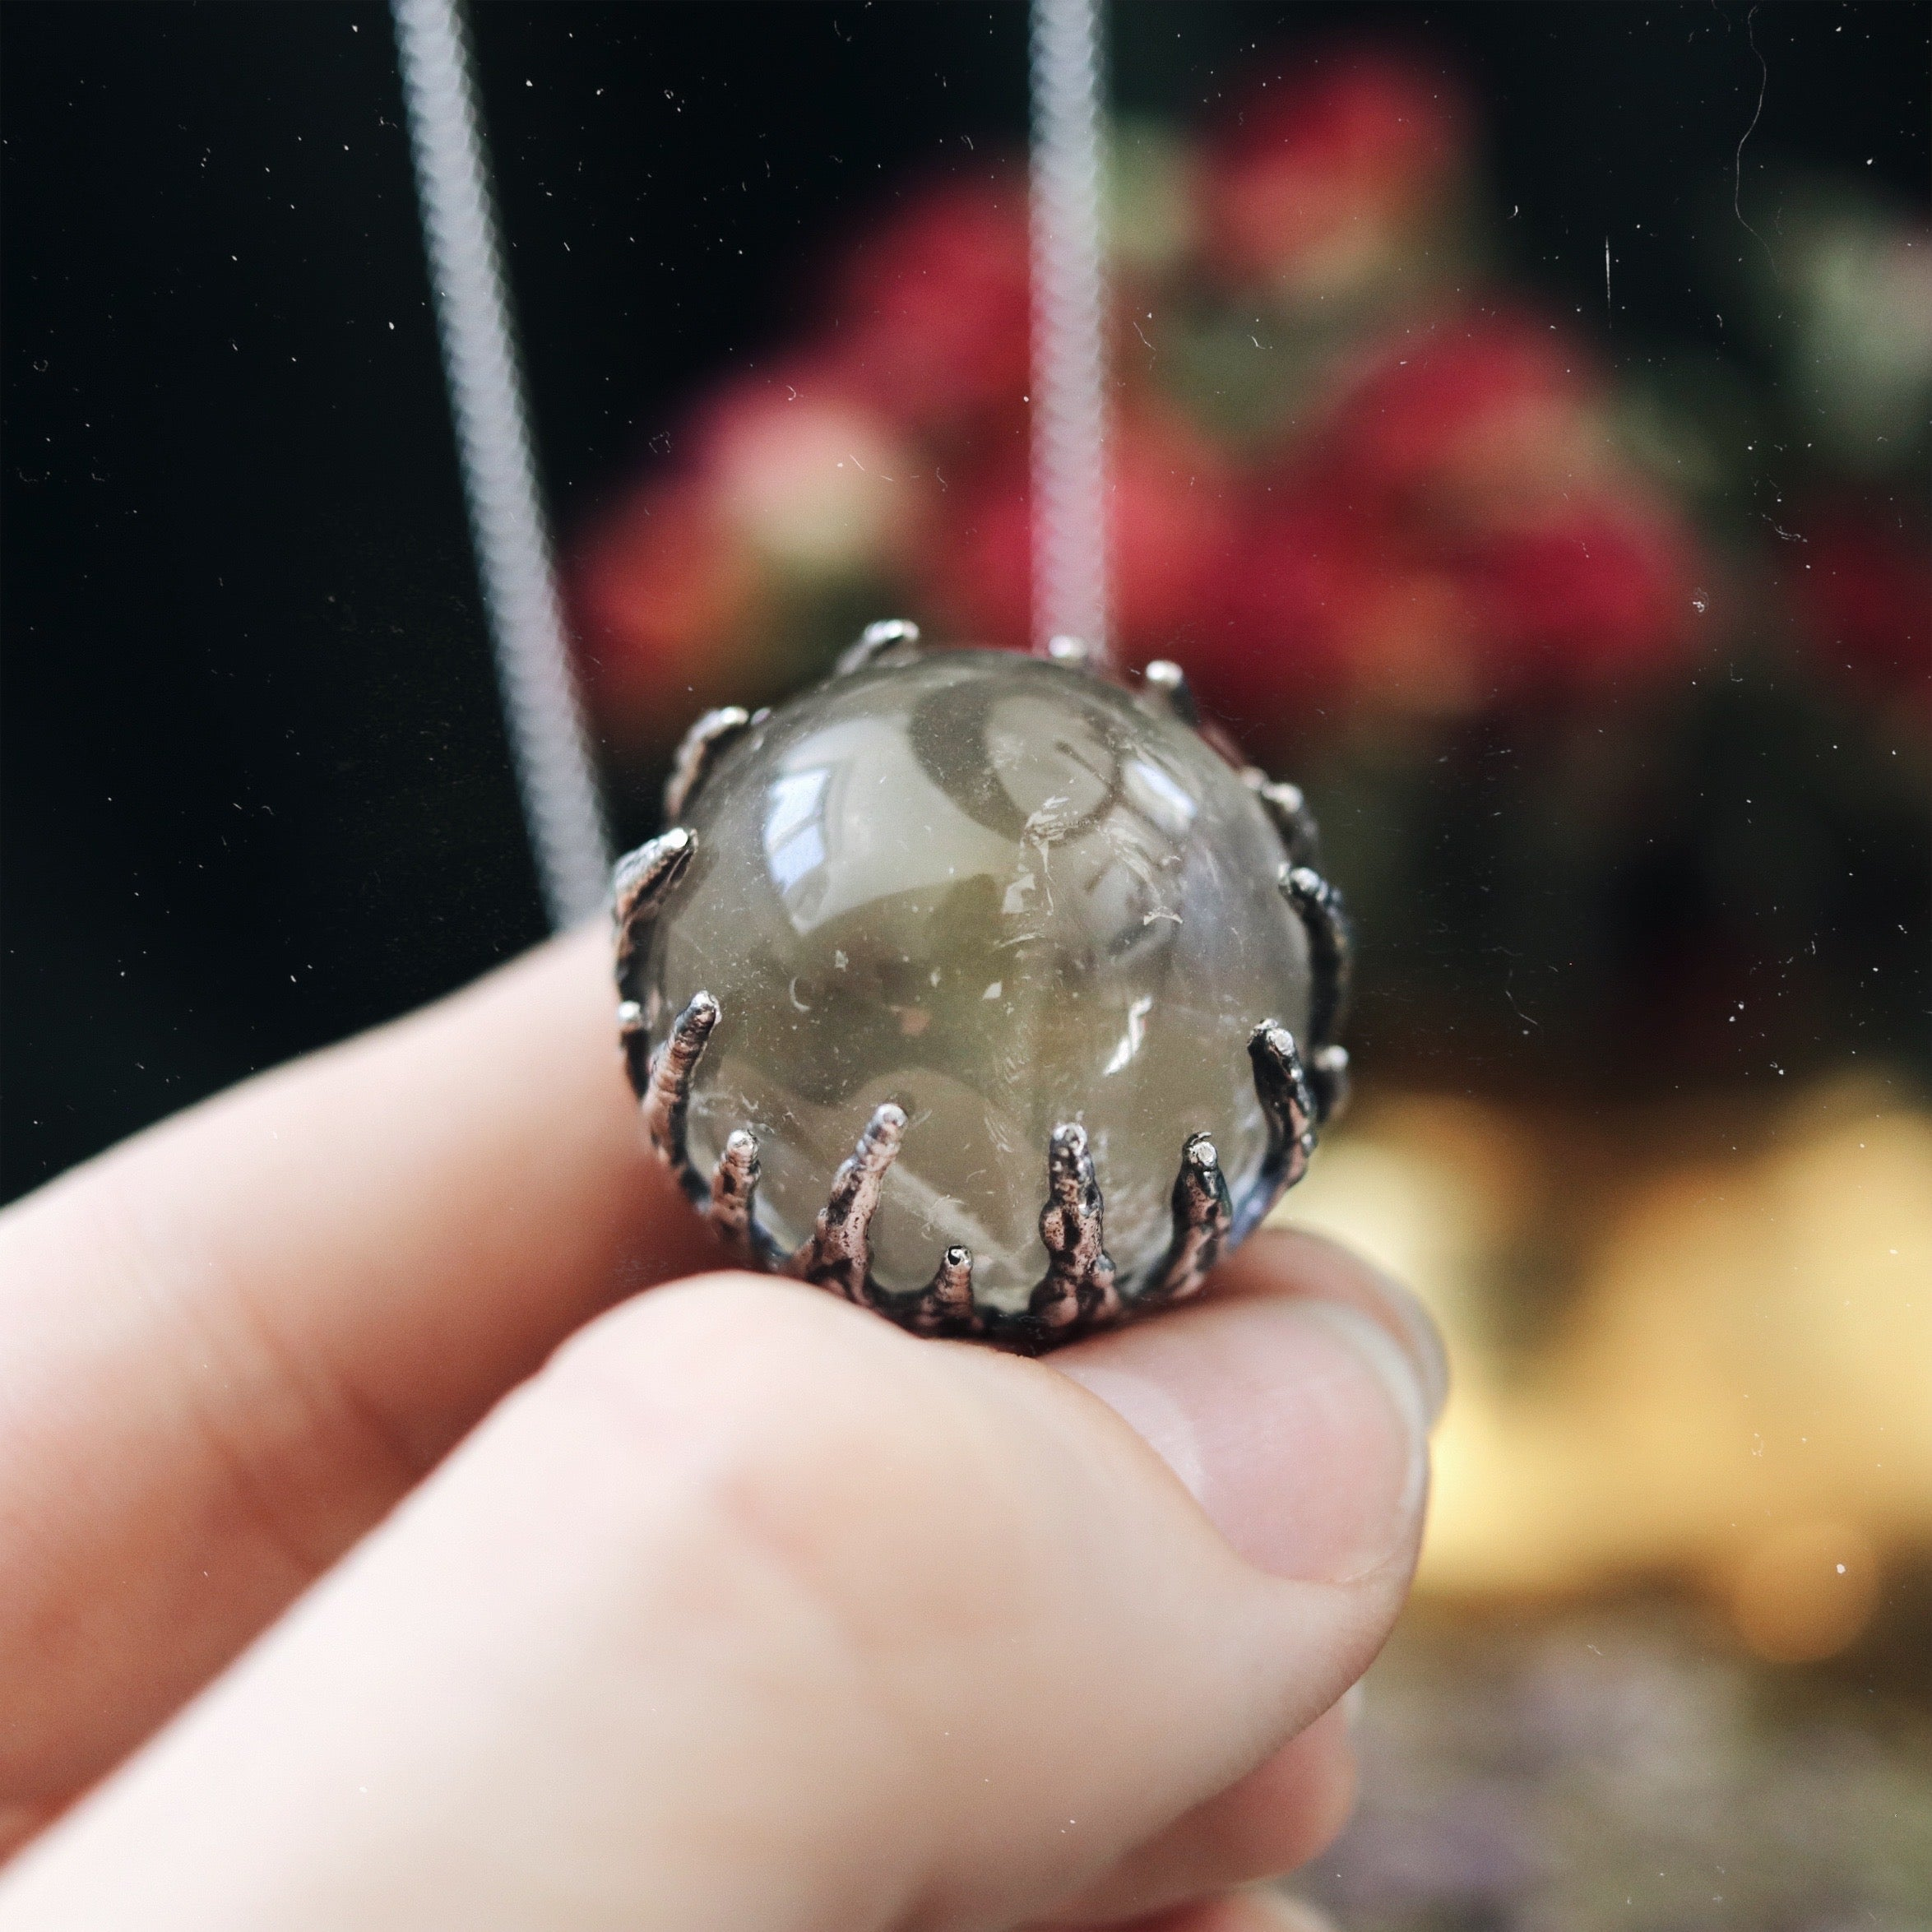 Victory Clear Quartz Crystal Ball Necklace #30